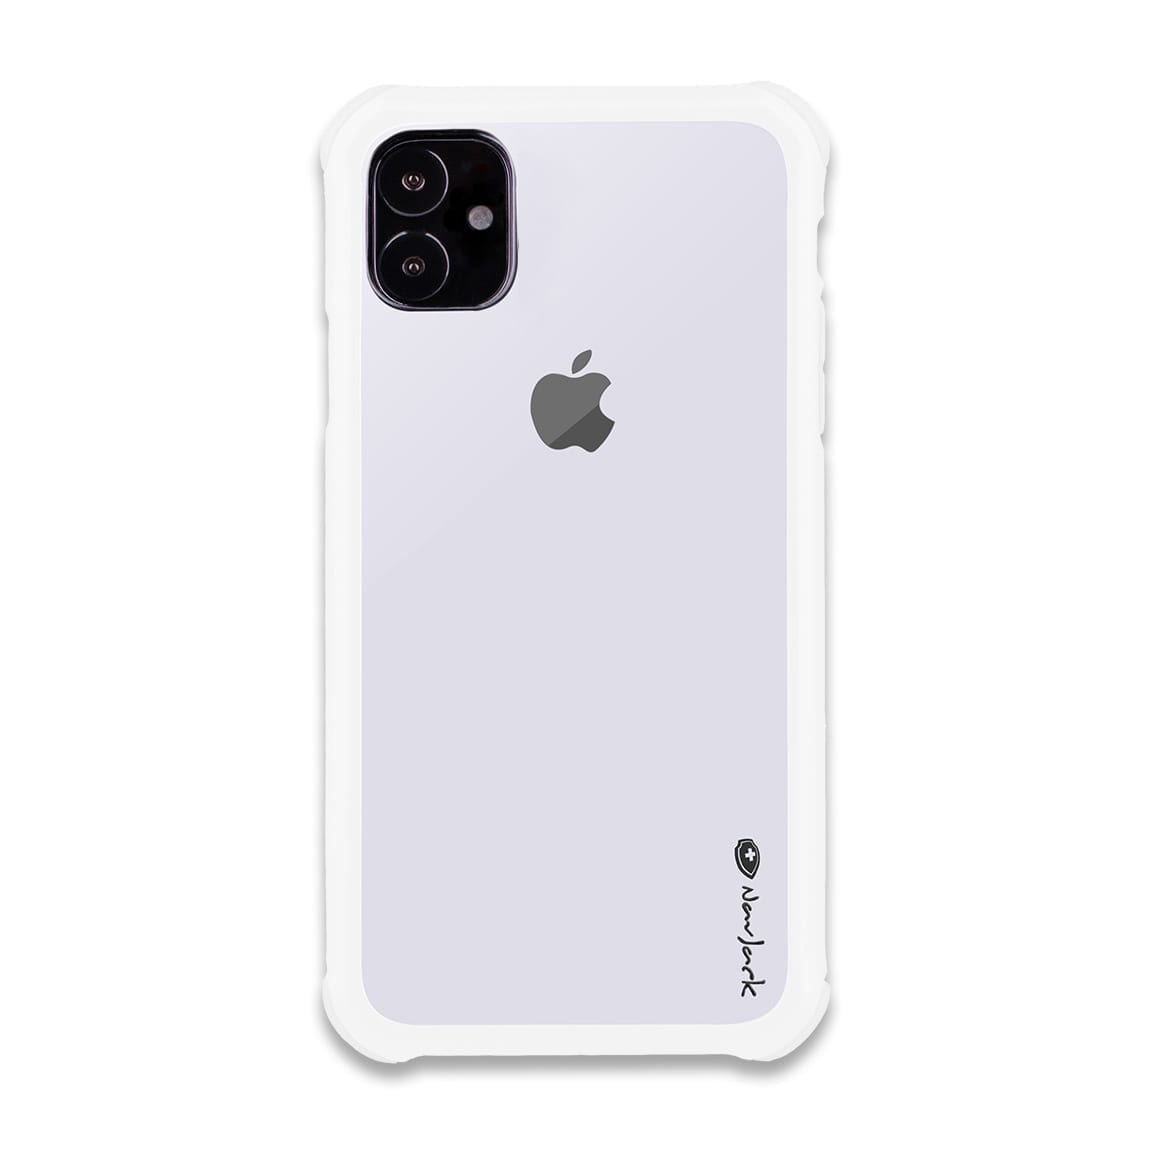 NavJack Germproof Series - iPhone 11 Antibacterial and Antiviral Phone Case